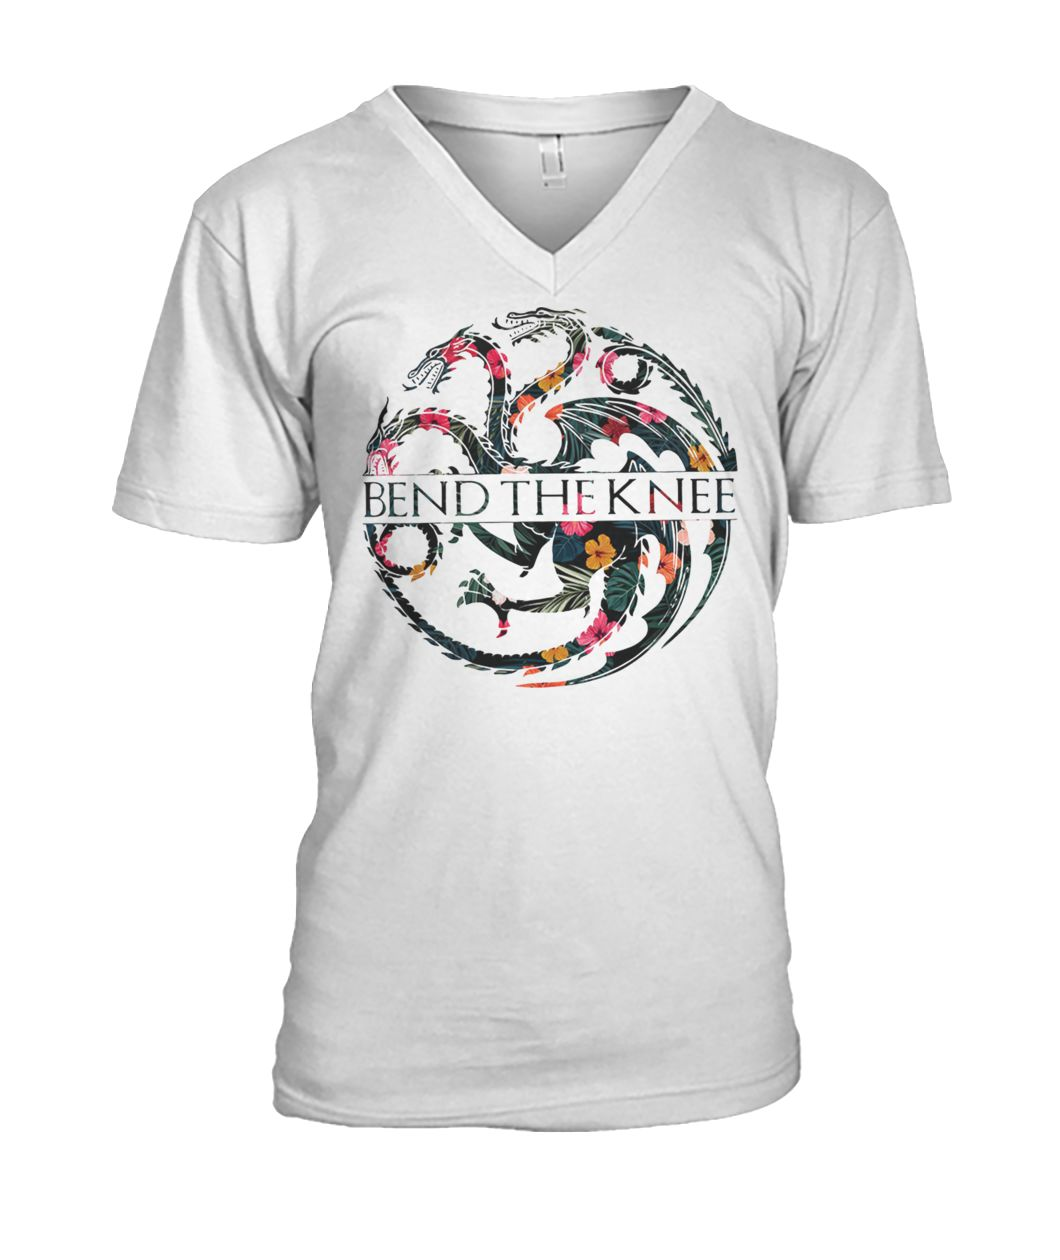 Game of thrones house targaryen bend the knee mens v-neck